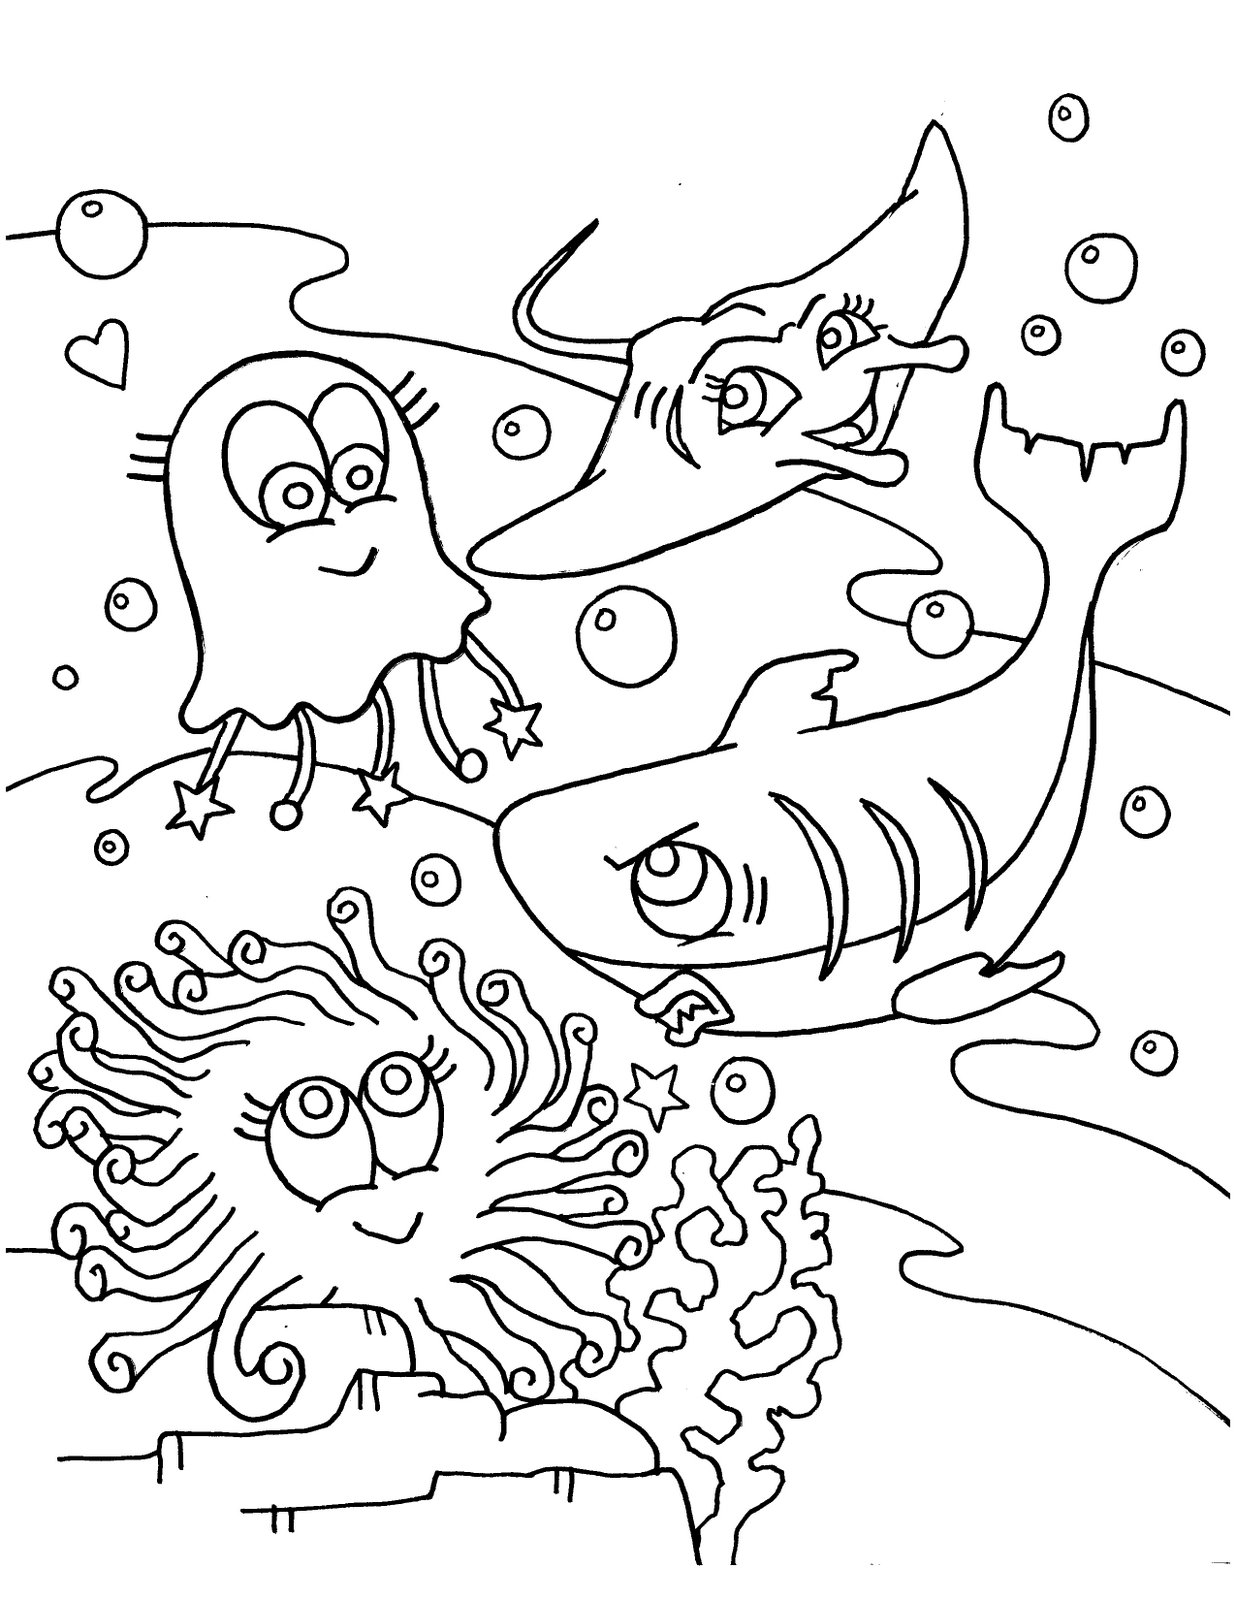 Ocean Coloring Pages To Download And Print For Free